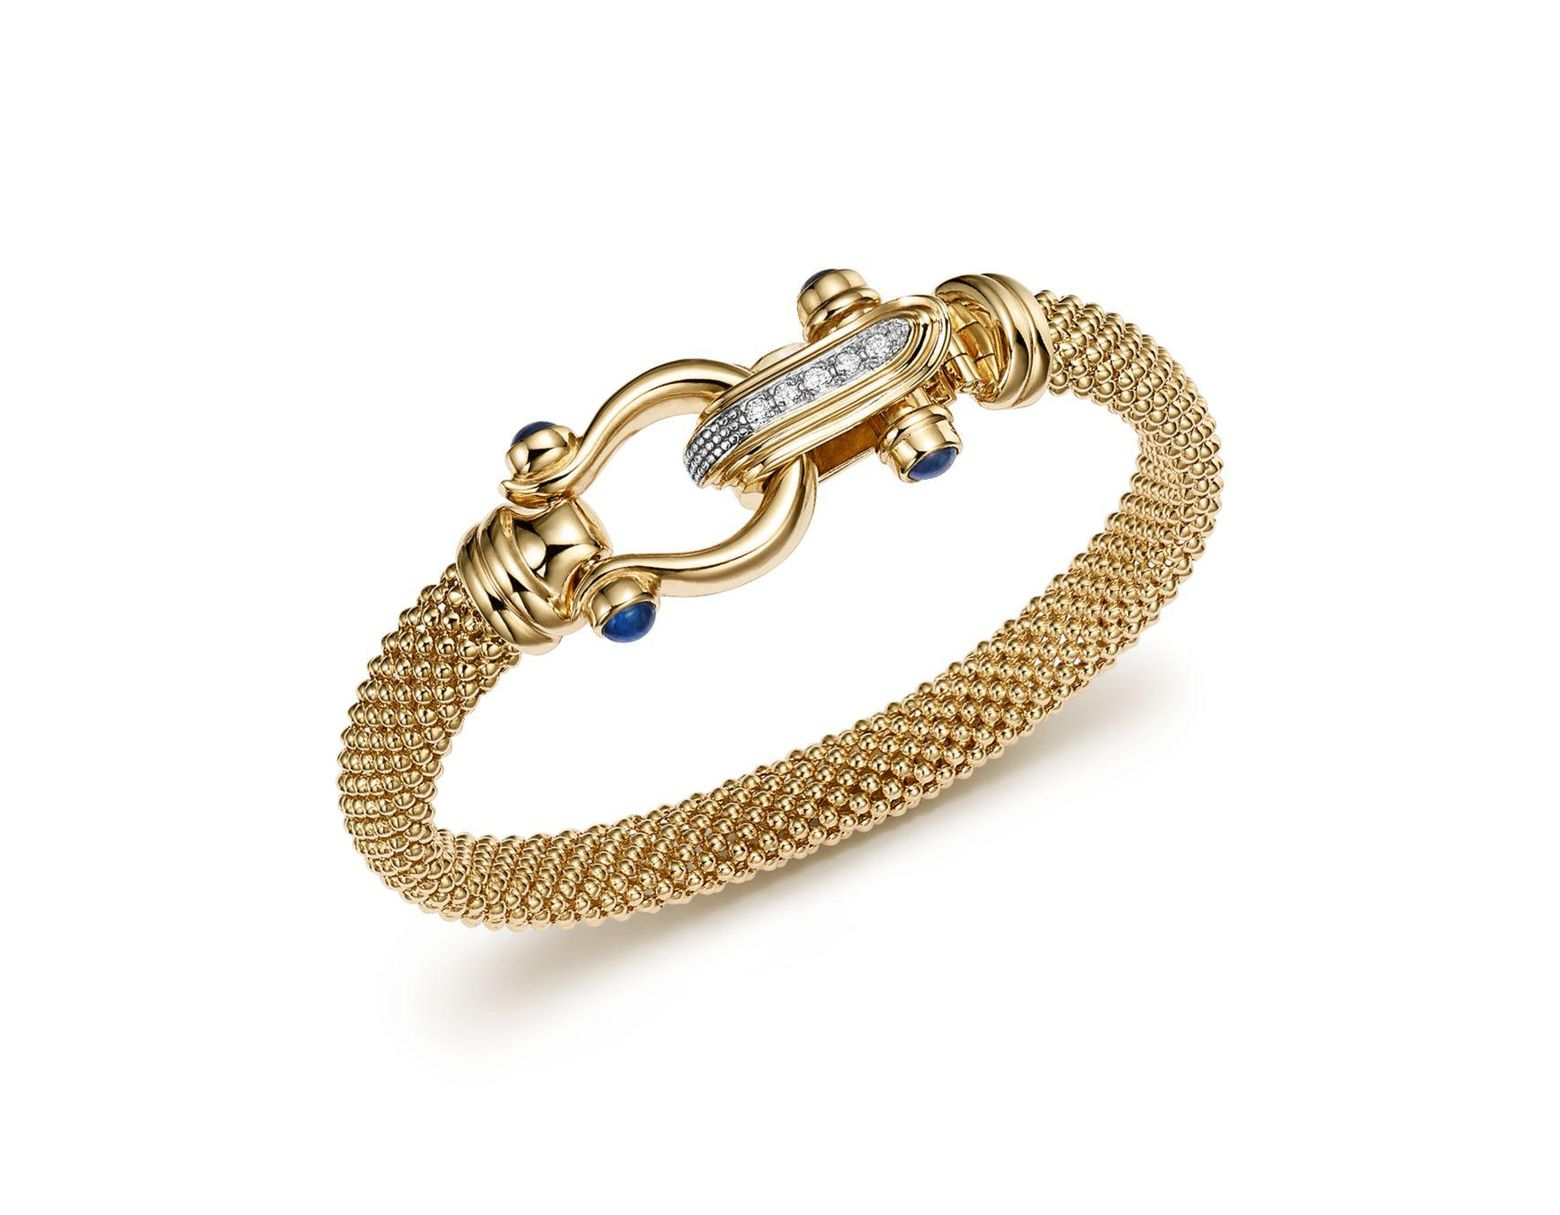 c413856ce Bloomingdale's 14k Yellow Gold Beaded Mesh Bracelet With Diamond Clasp in  Metallic - Lyst